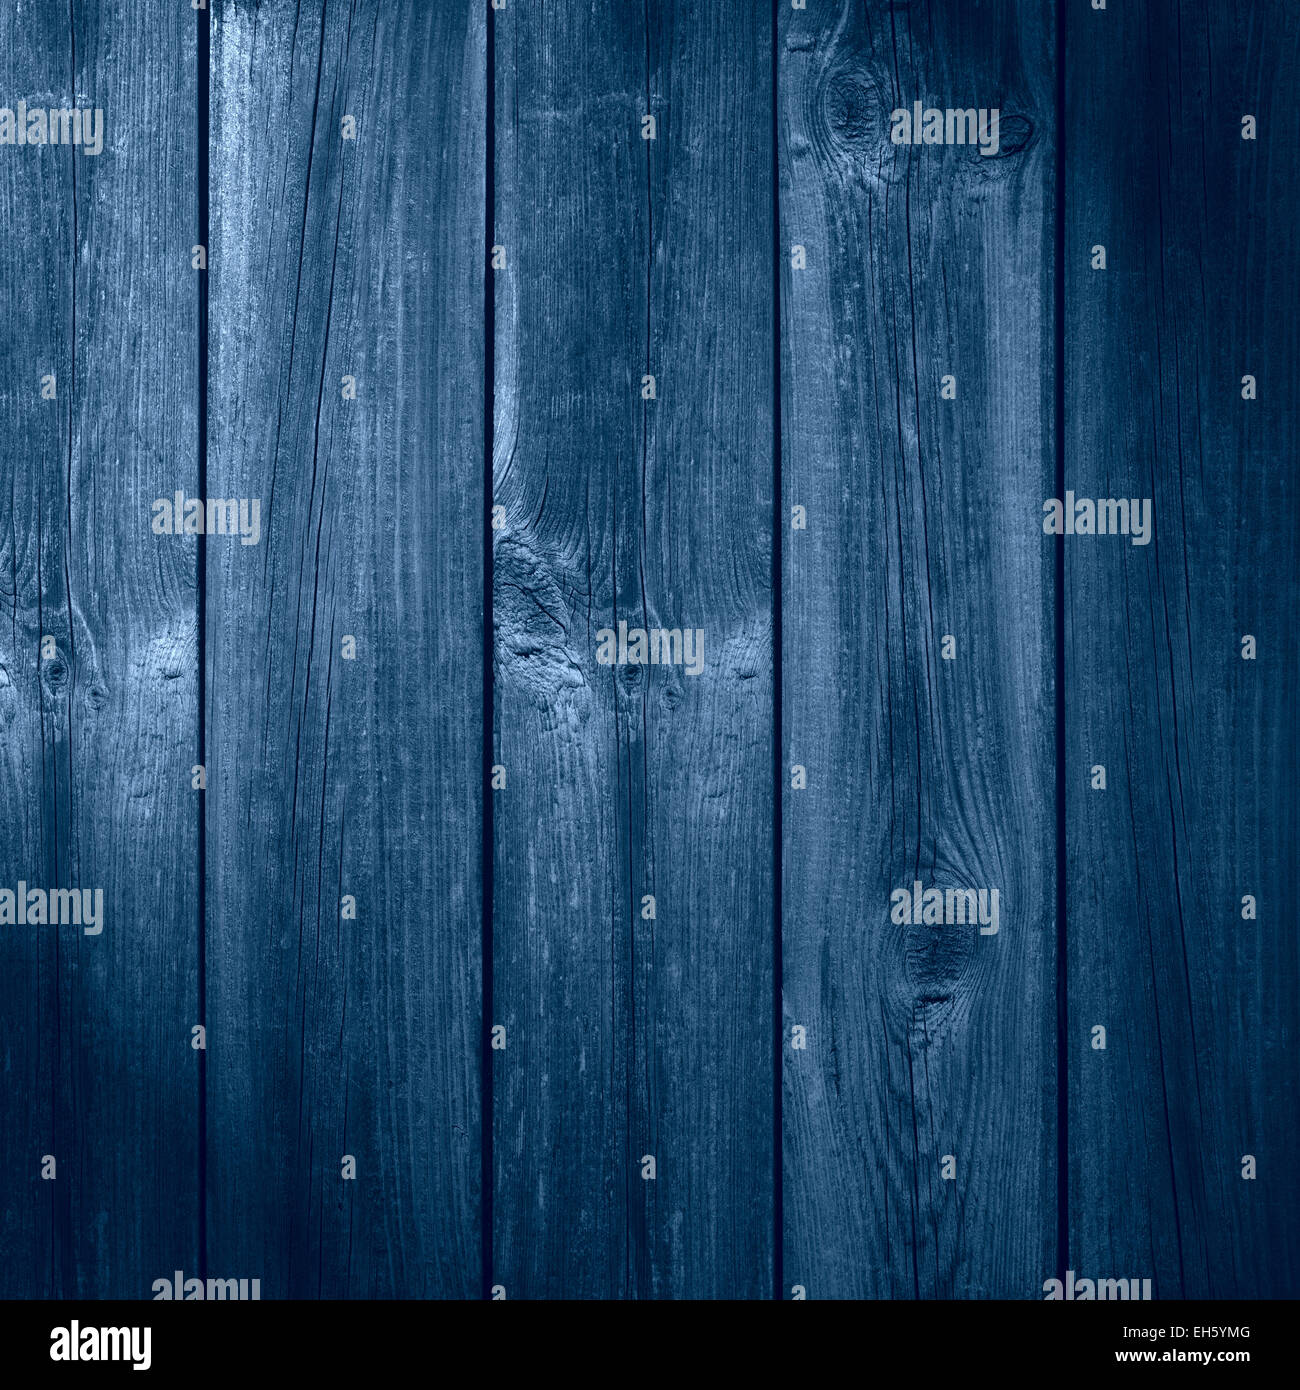 old wooden blue planks background or organic texture - Stock Image